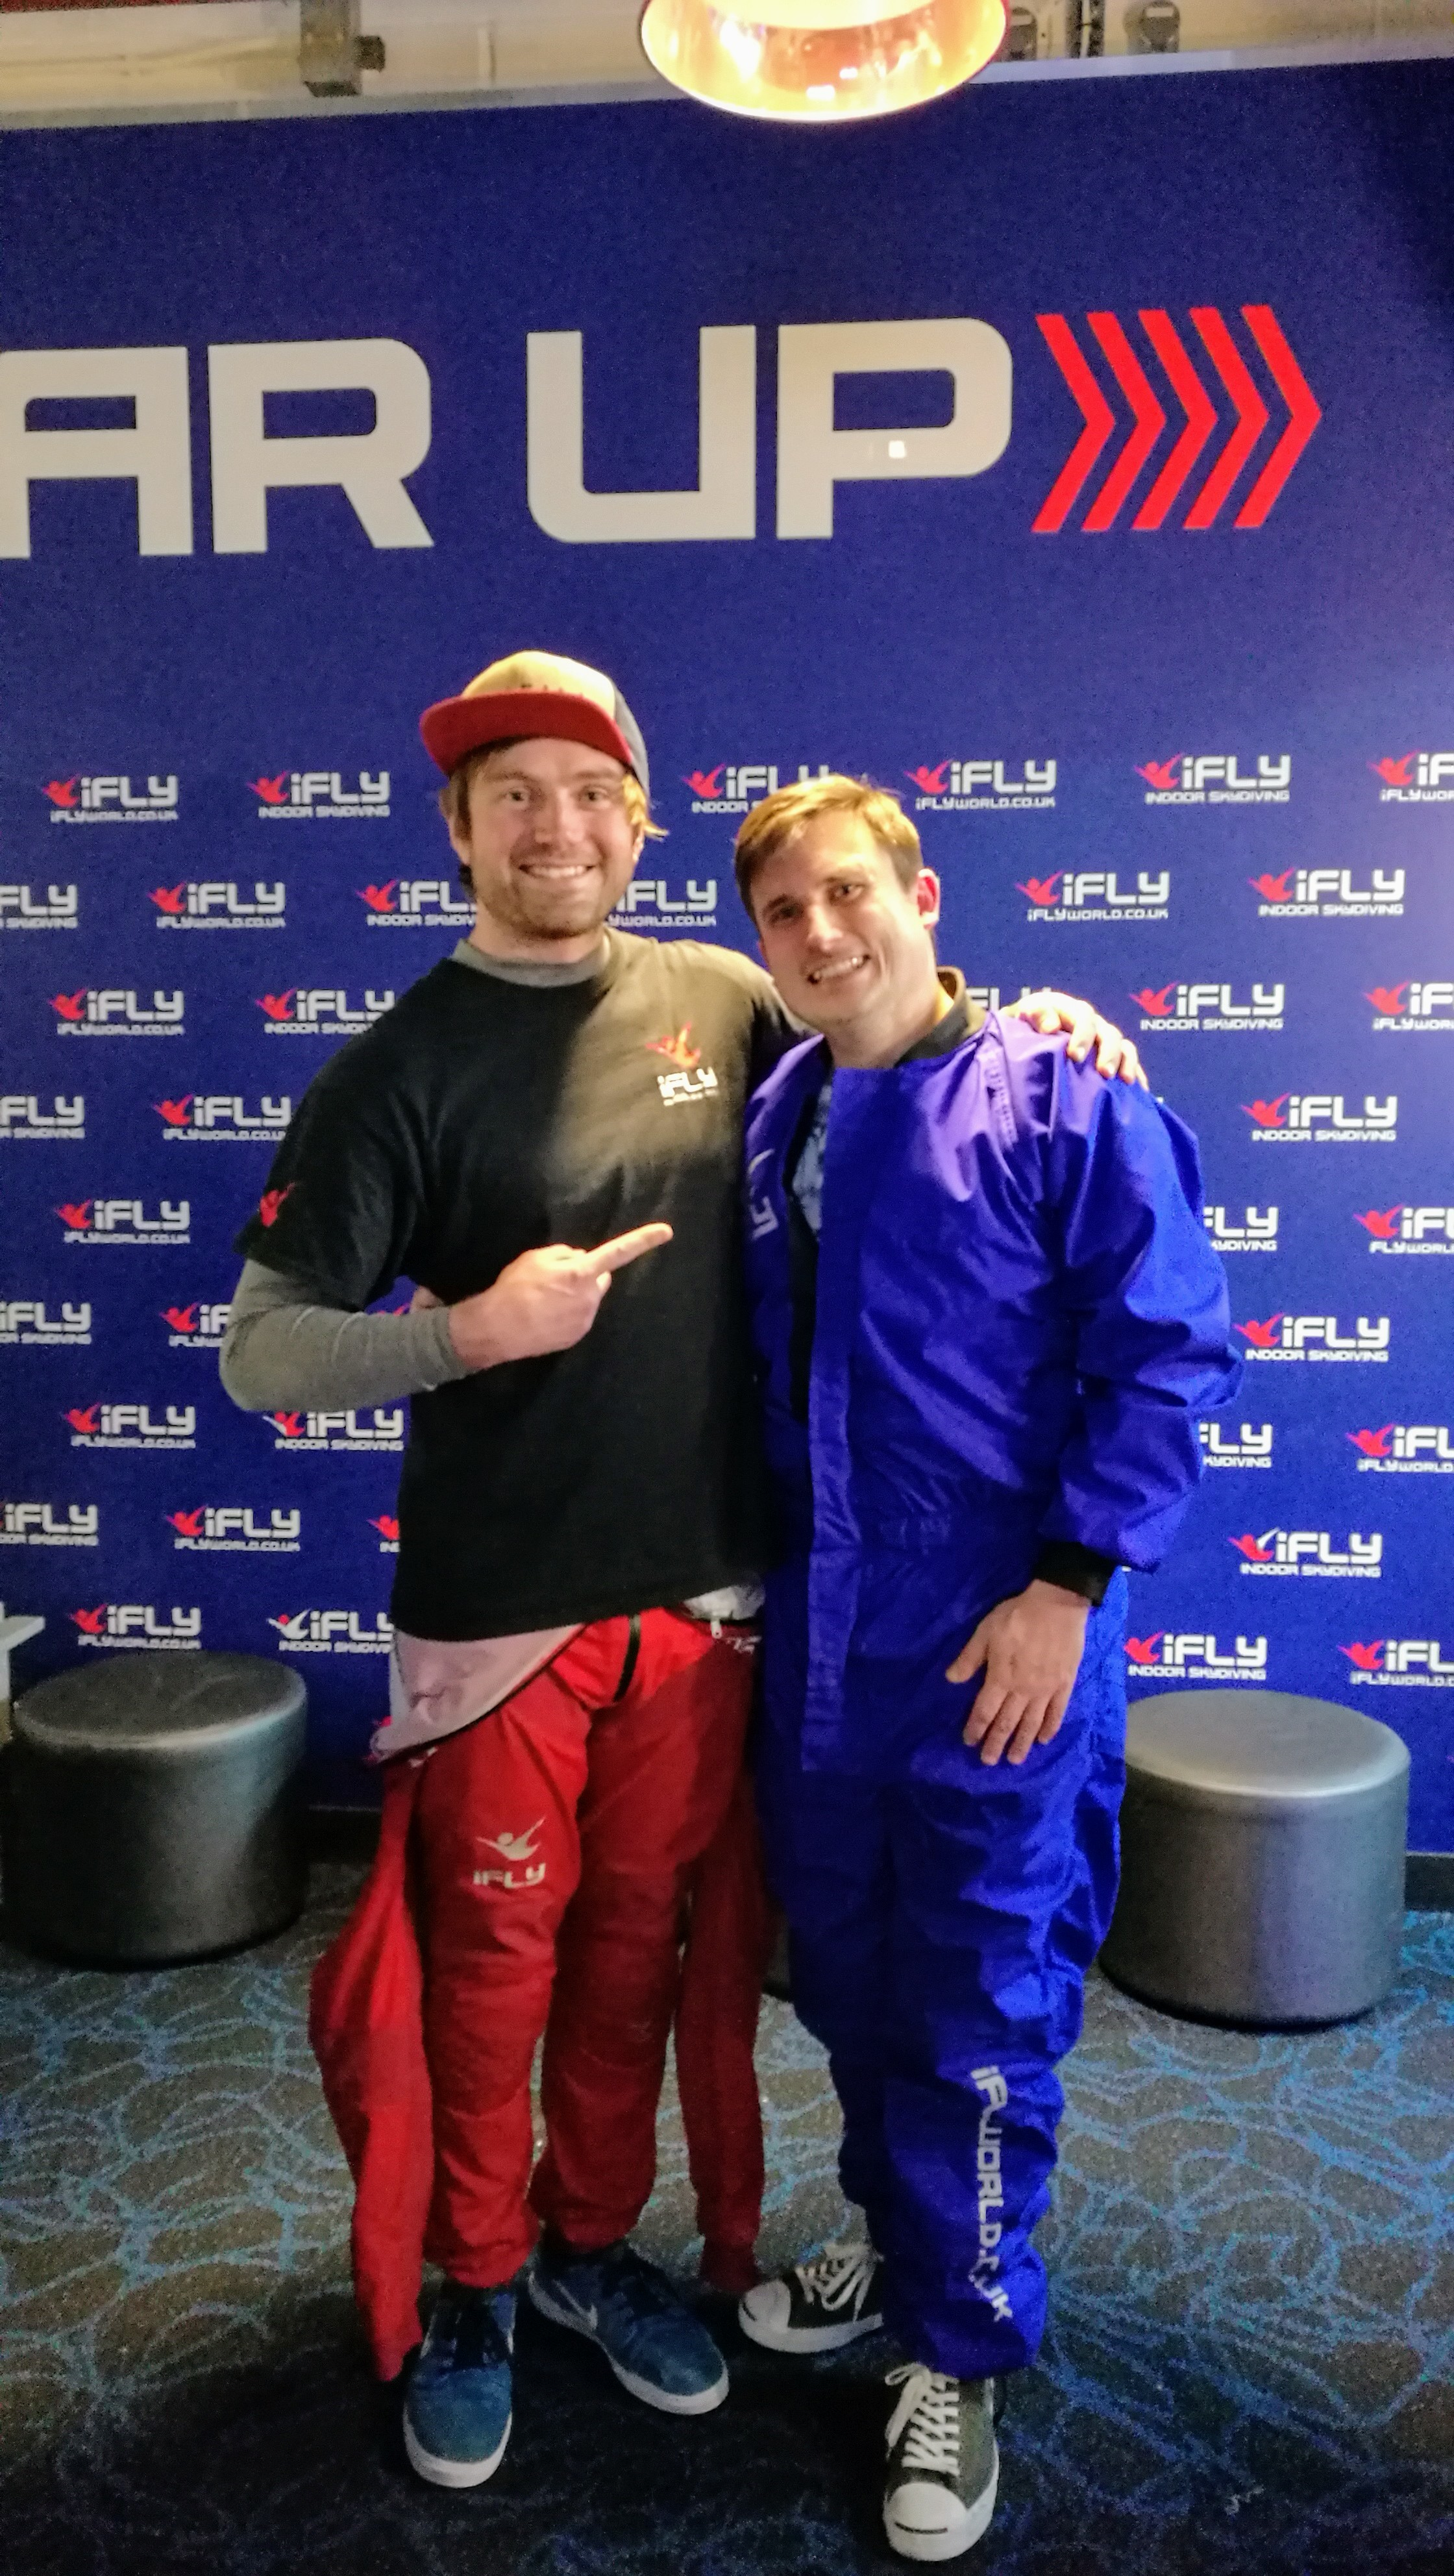 Me and Ted - The Indoor Skydiving LEGEND